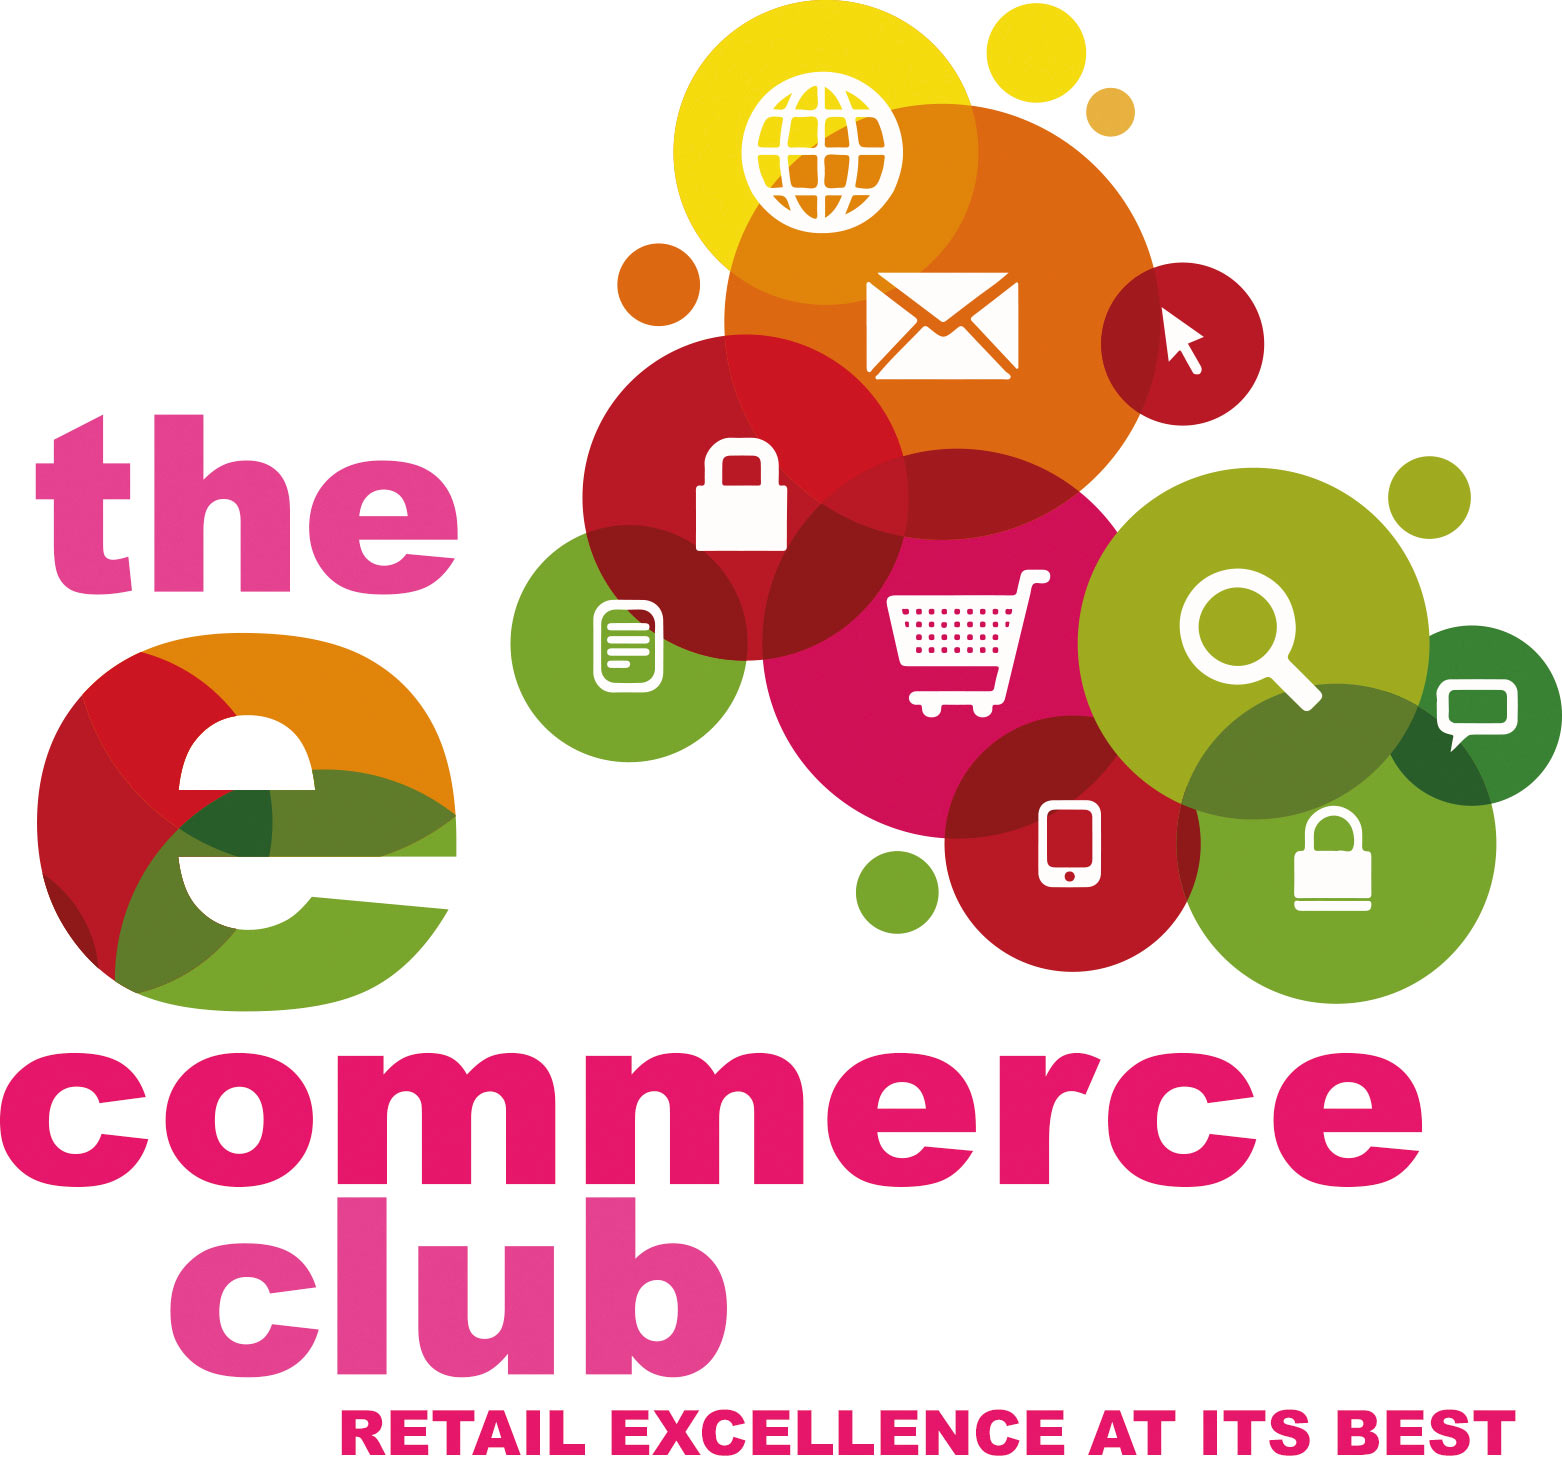 The Ecommerce Club